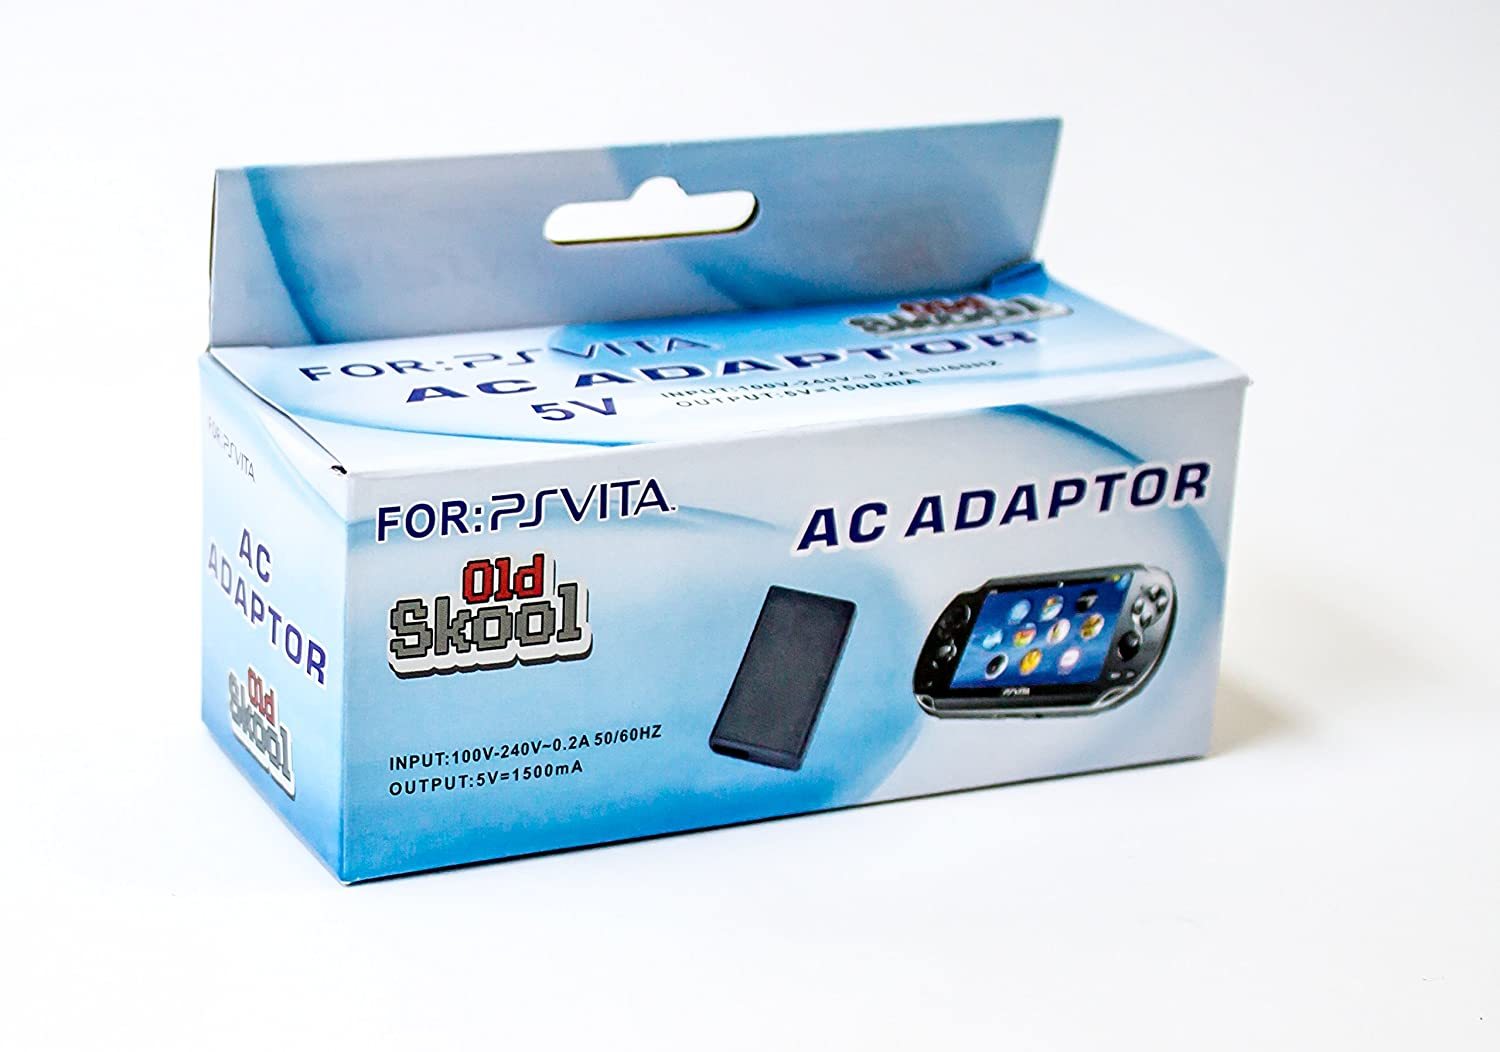 Old Skool PlayStation Vita AC Adaptor with USB Data Cable for PS Vita